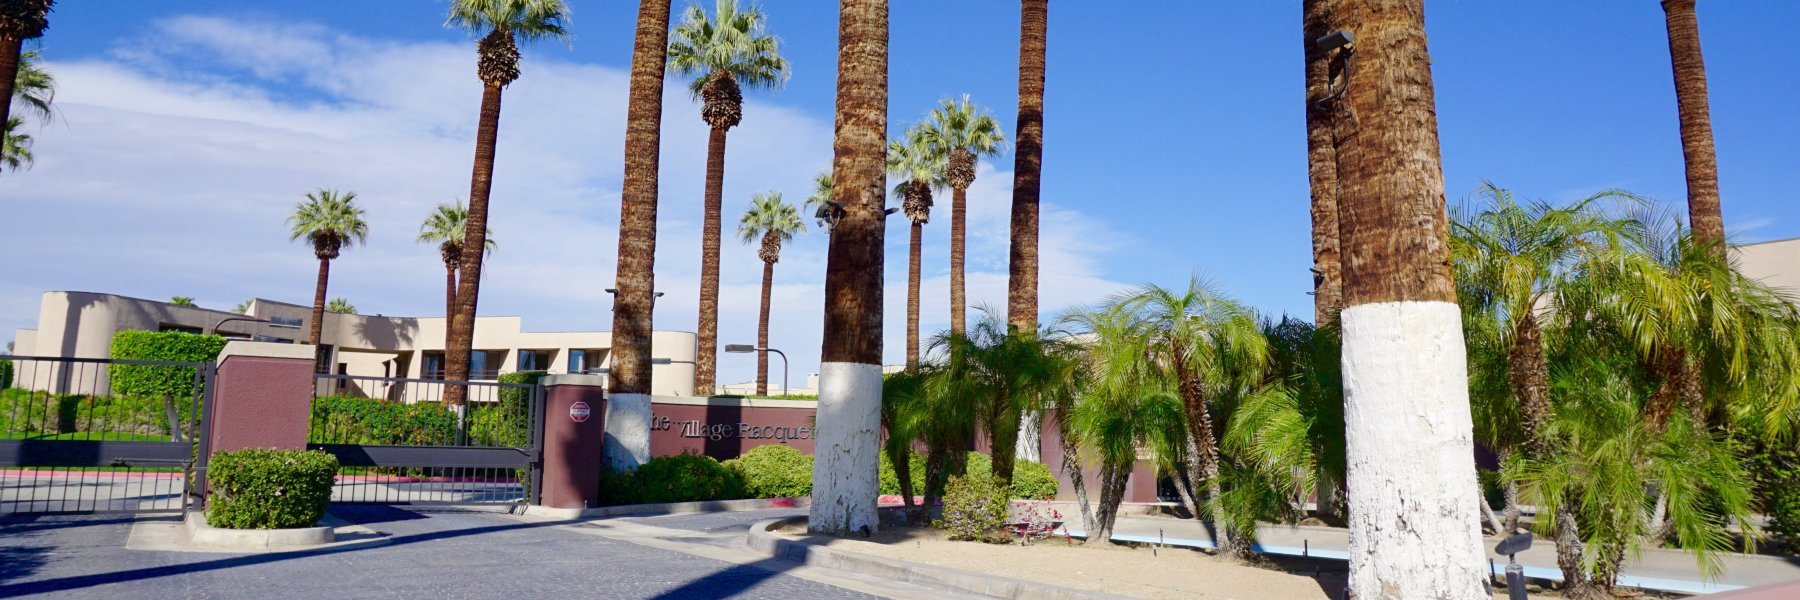 Village Racquet Club is a community of condos in Palm Springs California